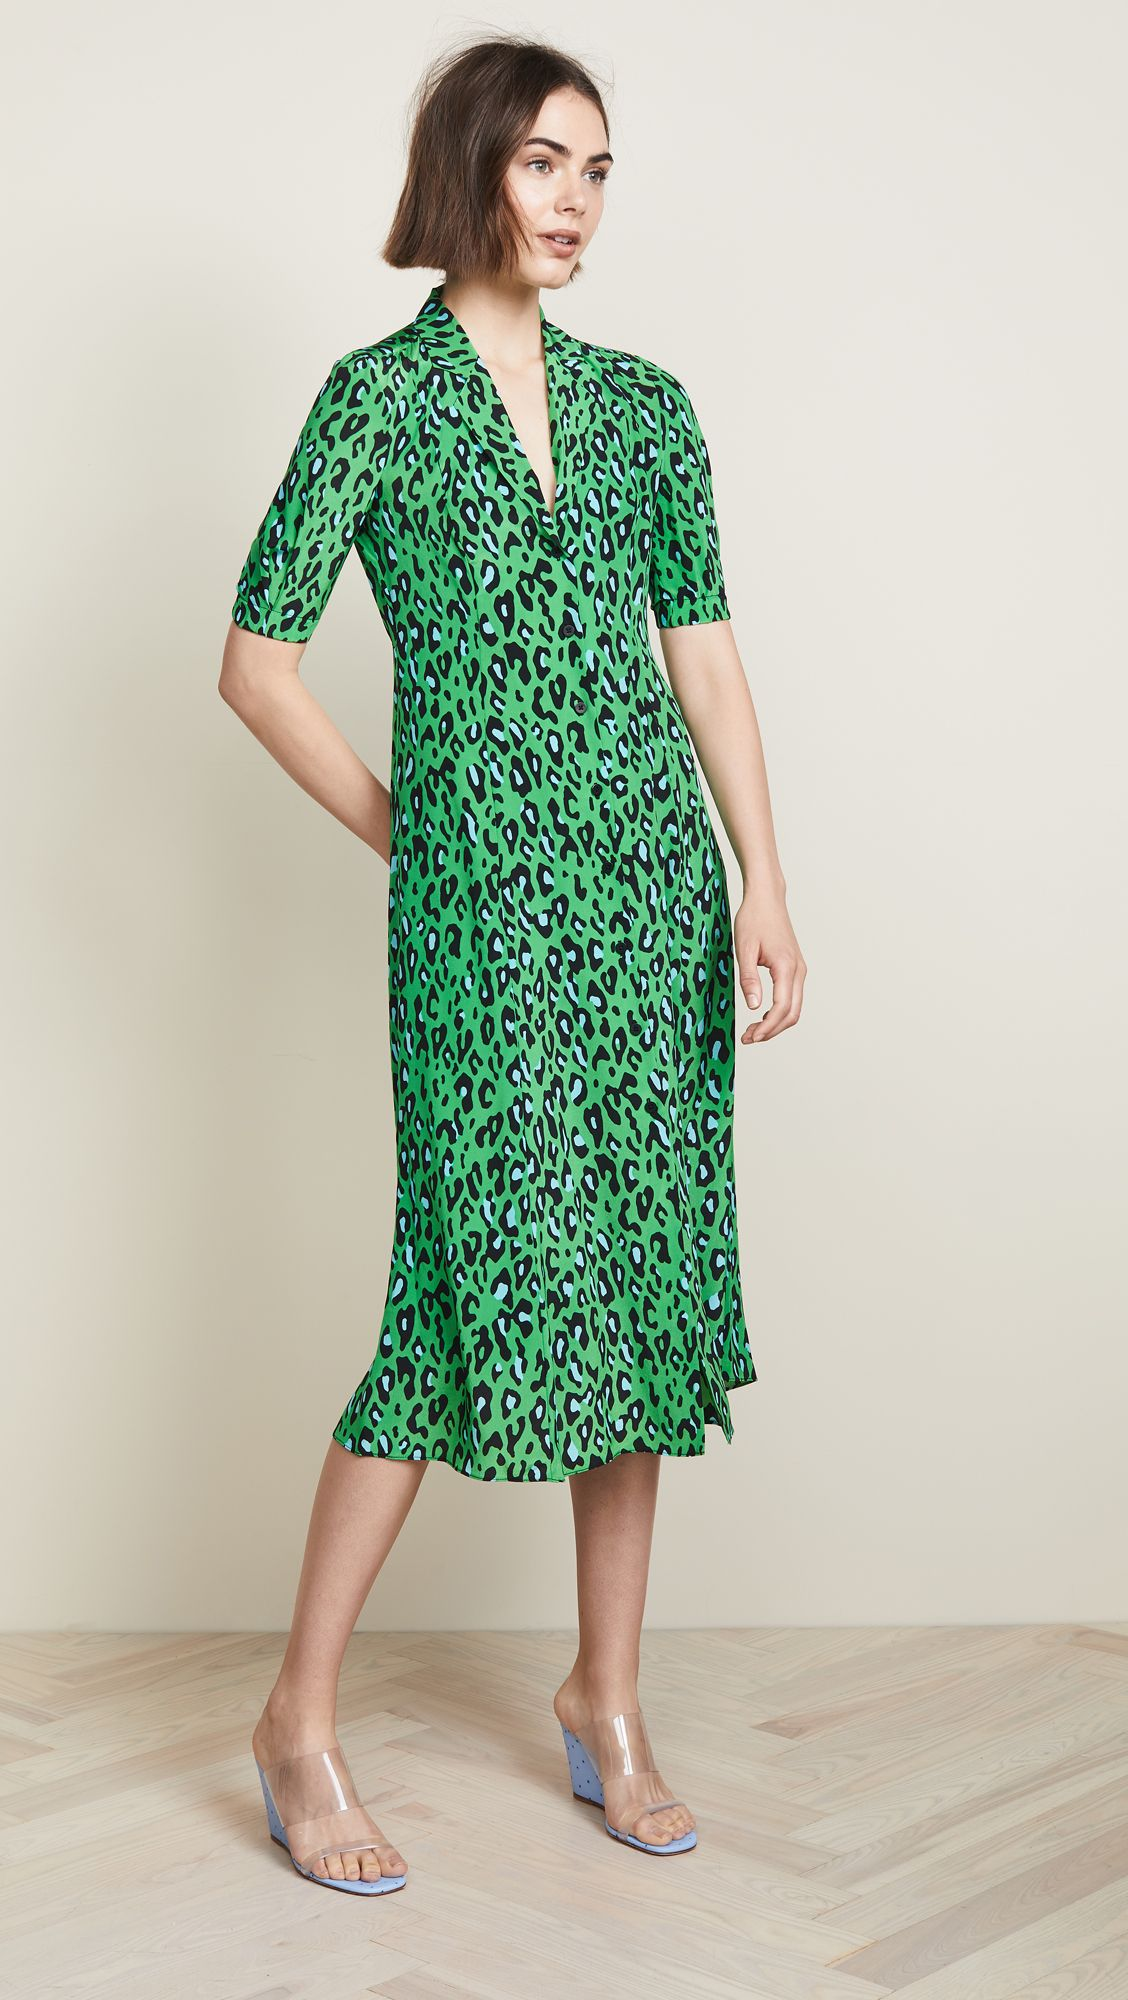 0b21248fe019 The Daily Hunt: The Nordstrom Anniversary Sale and more! Leopard Pattern,  Nordstrom Anniversary